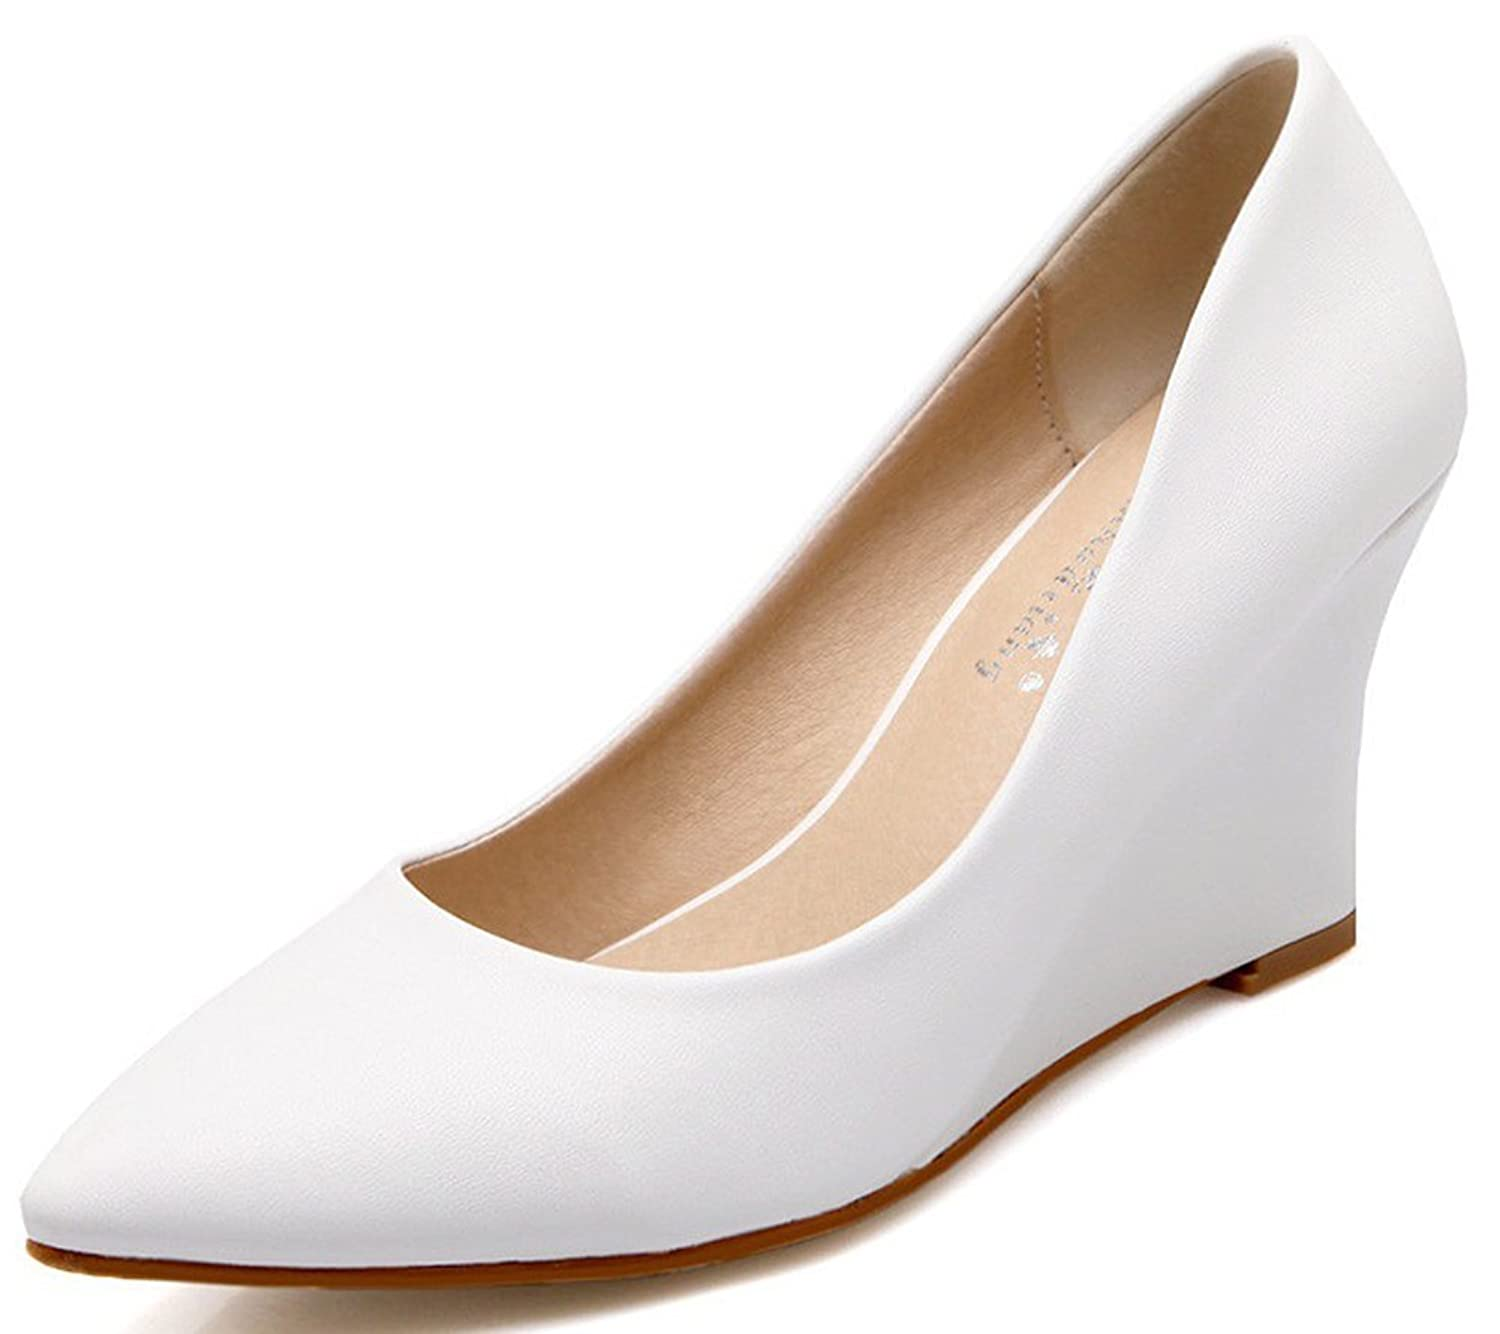 IDIFU Women's Sexy Mid Heel Wedge Shoes Pointed Toe Closed Slip On Low Top Pumps